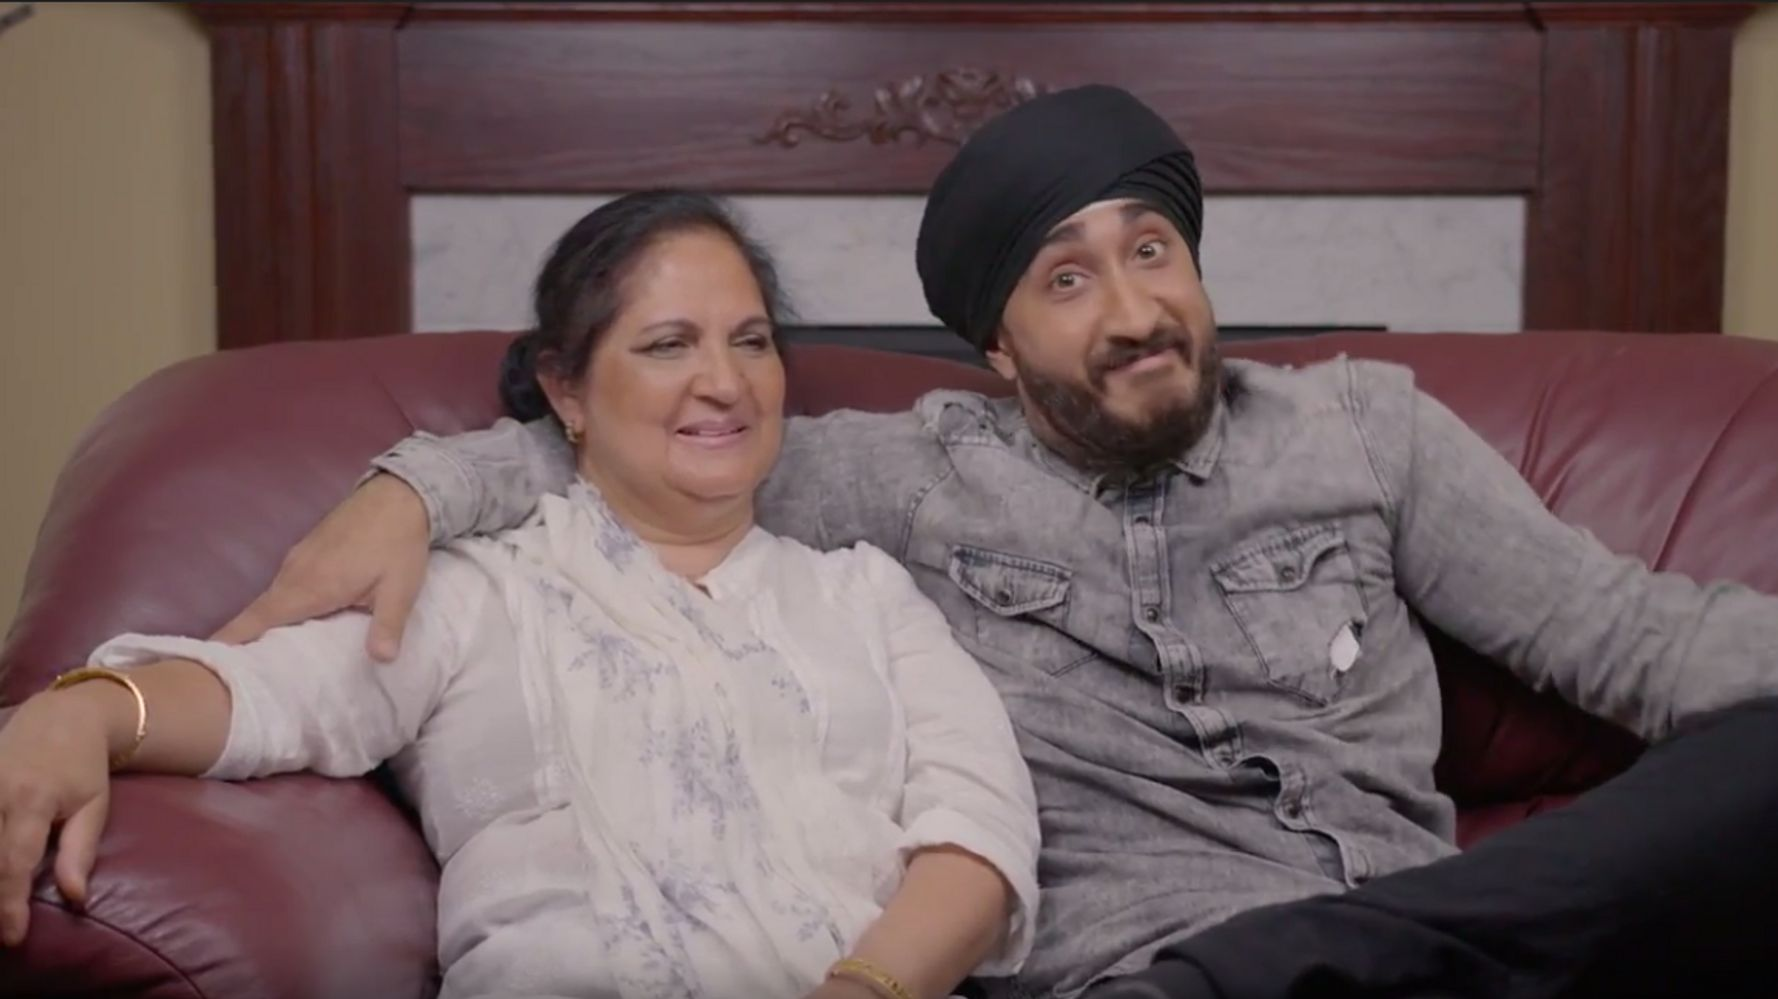 Jus Reign Has A Few Important Things To Say About His Mom